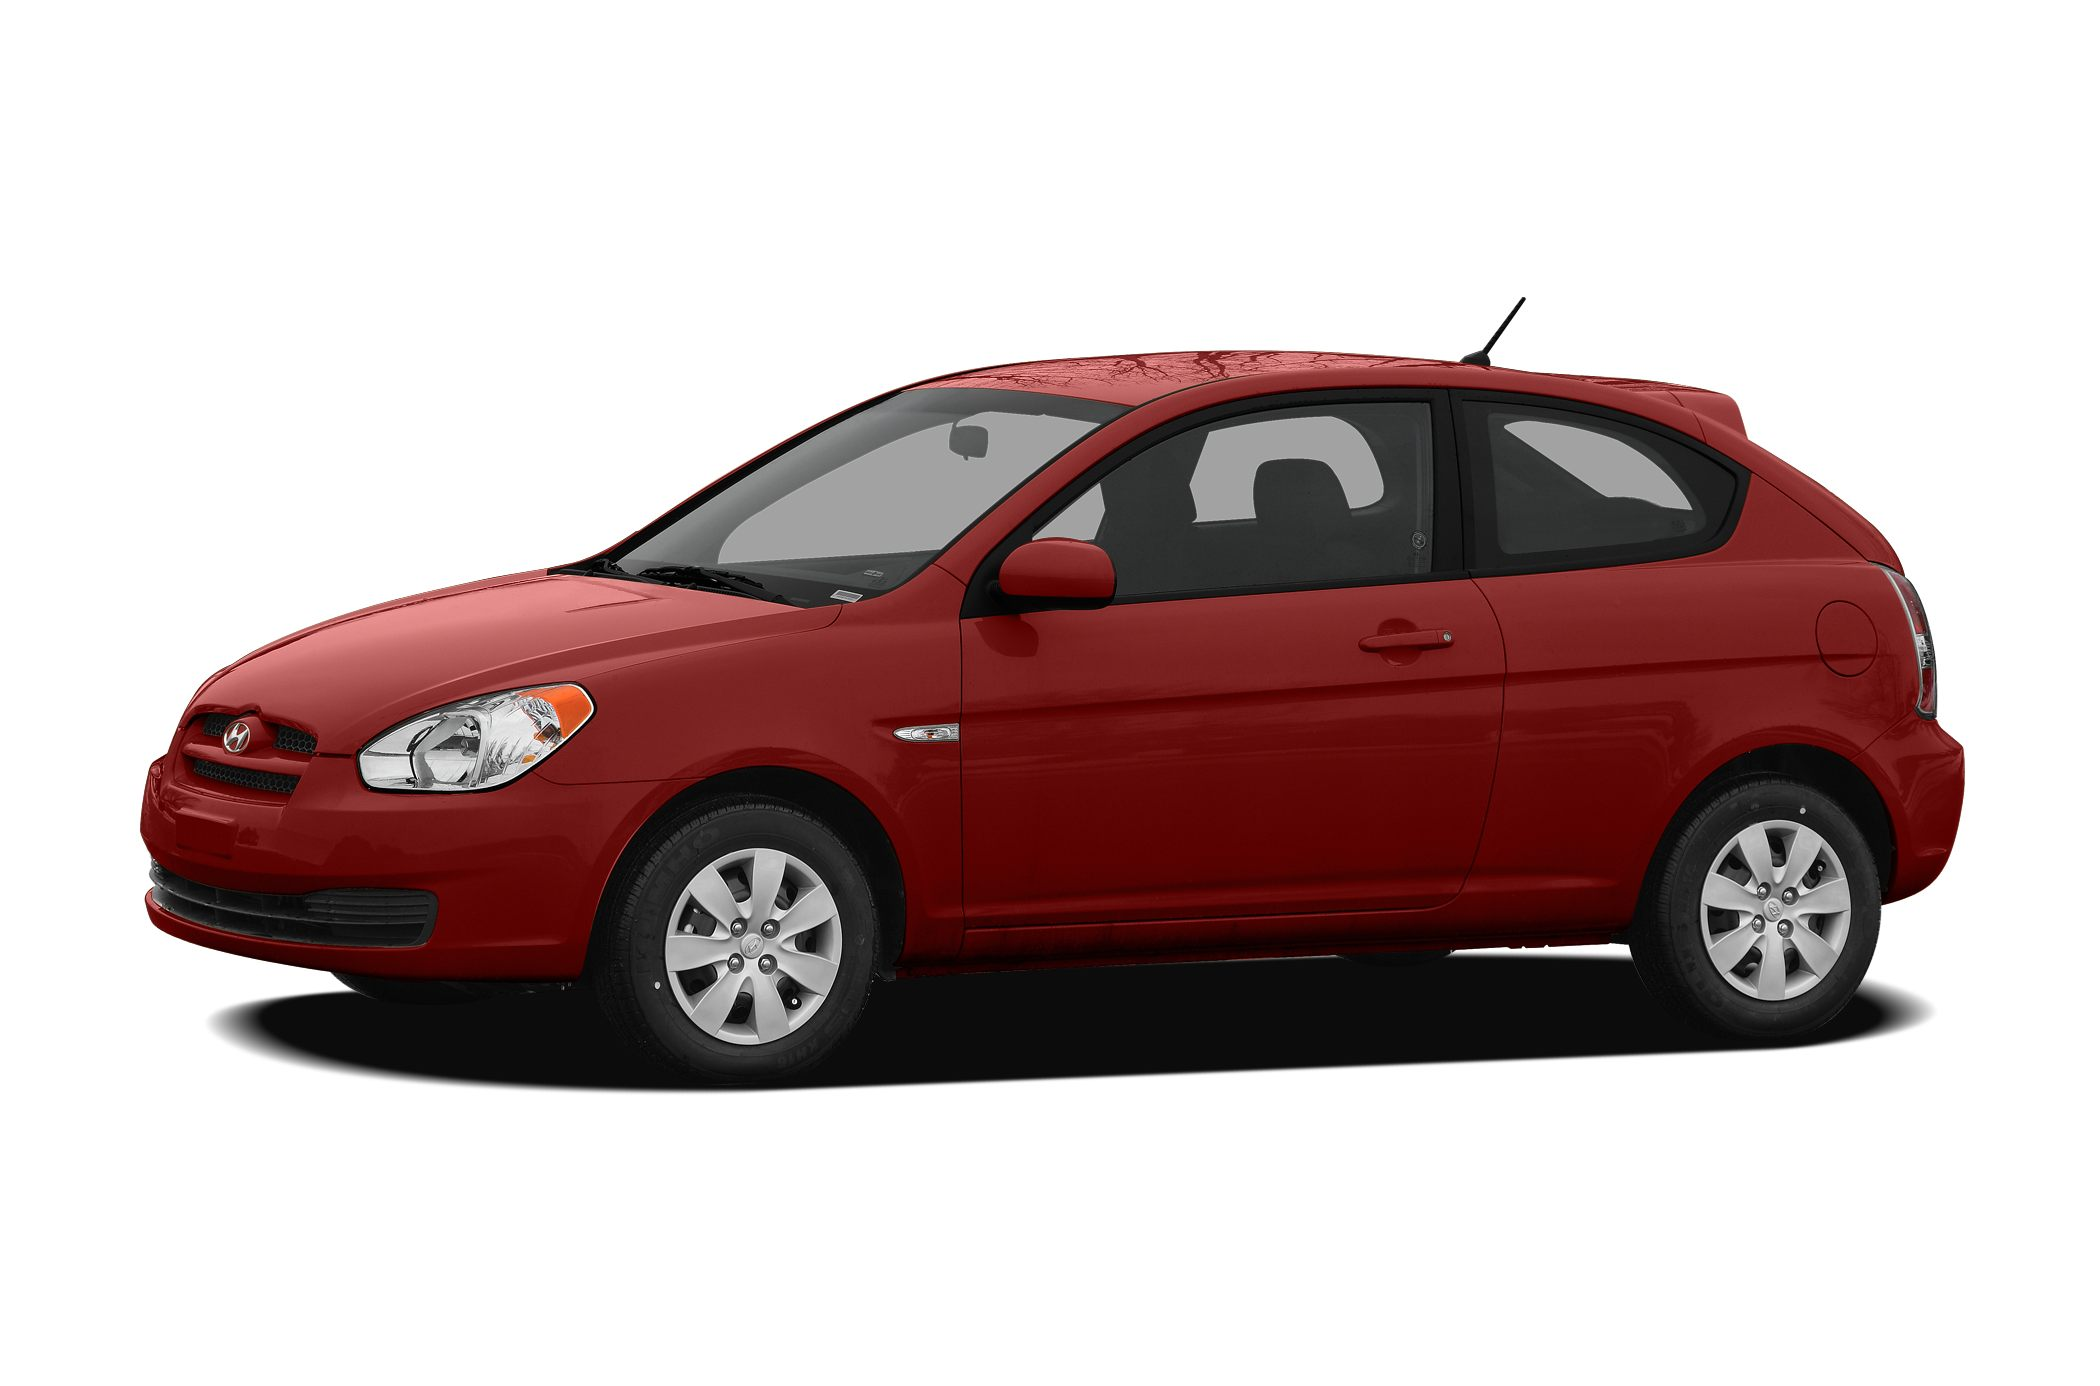 2011 Hyundai Accent GL Hatchback for sale in Scranton for $11,995 with 34,283 miles.